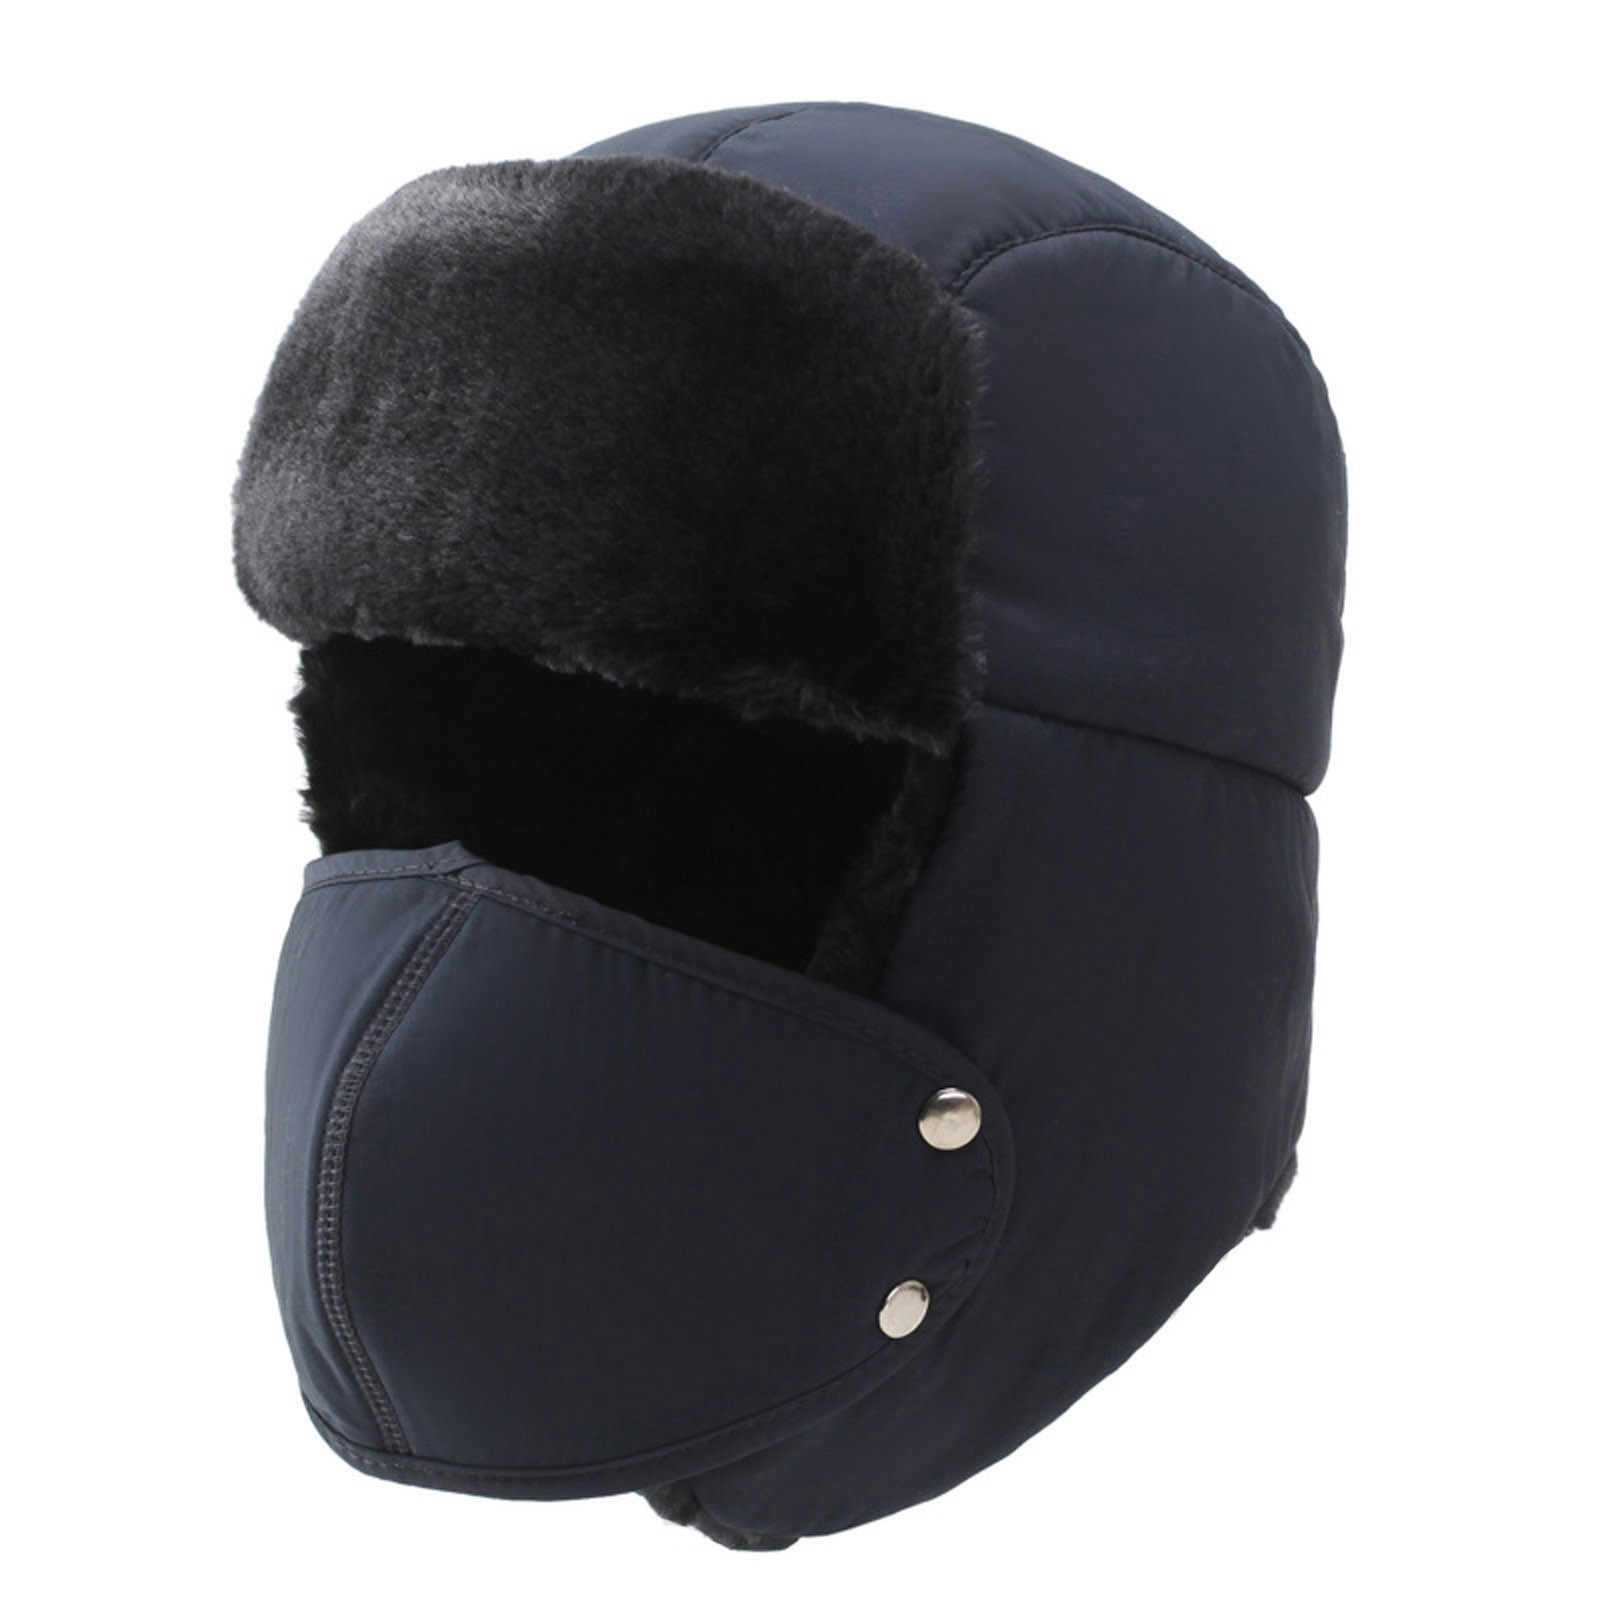 Drop Ship Winter Thickened Thermal Plush Detachable Mask Hats Cycling Windproof Cold Face Cover Prot